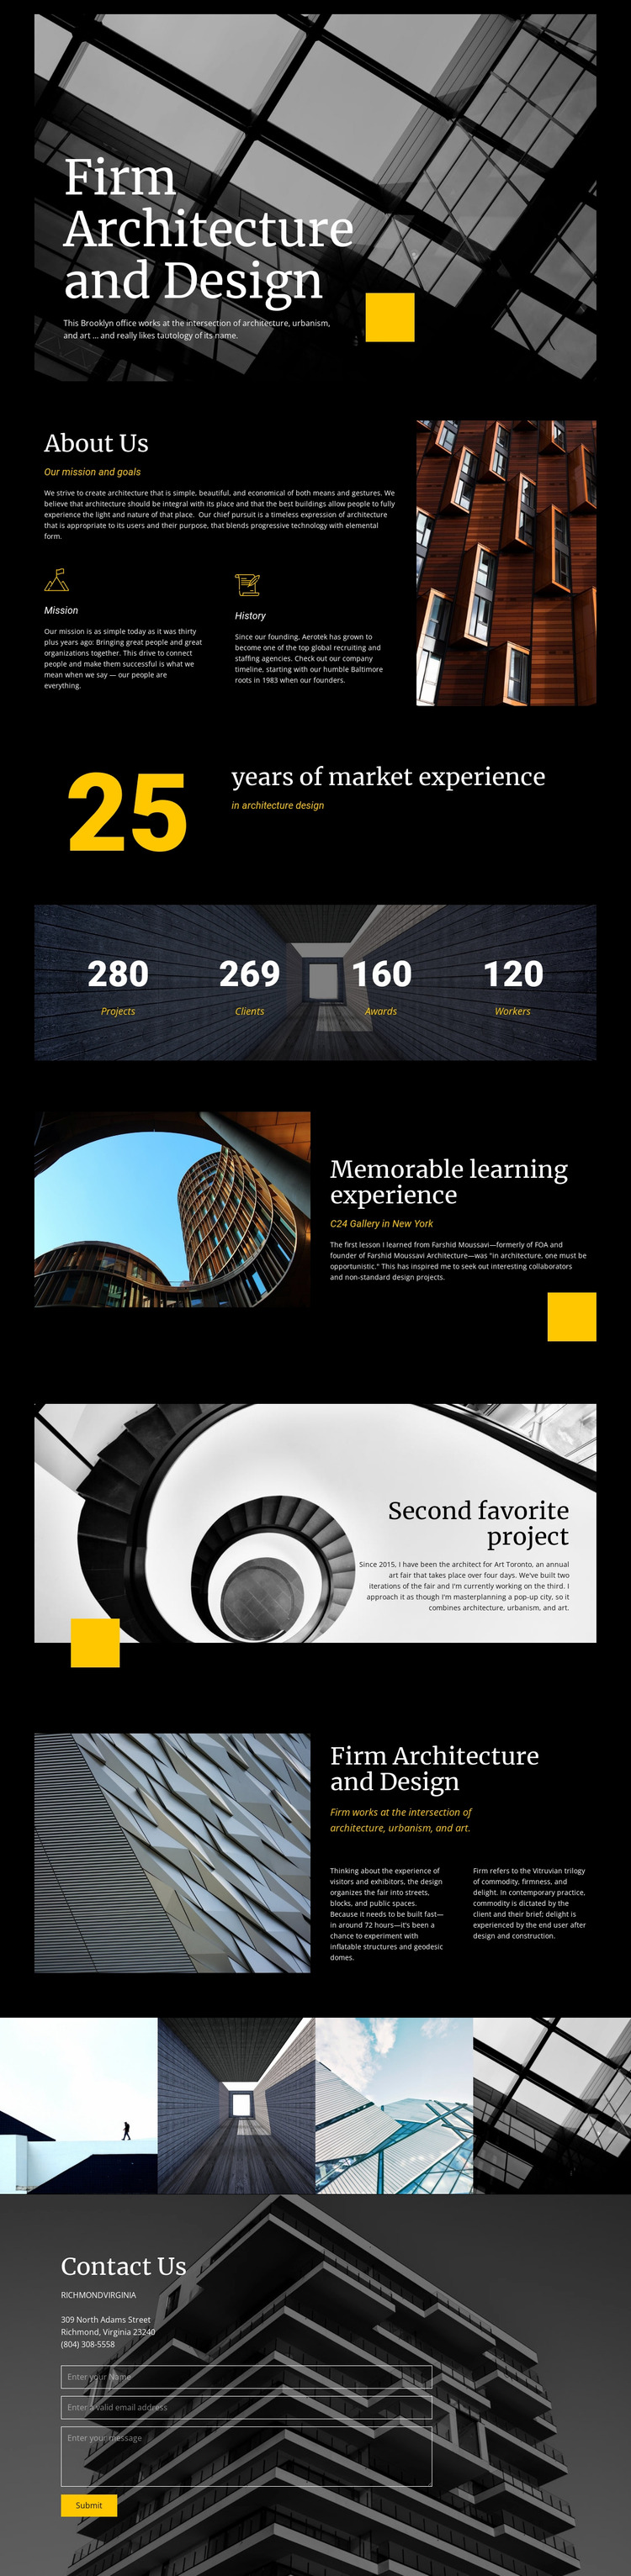 Firm architecture and Design Website Mockup